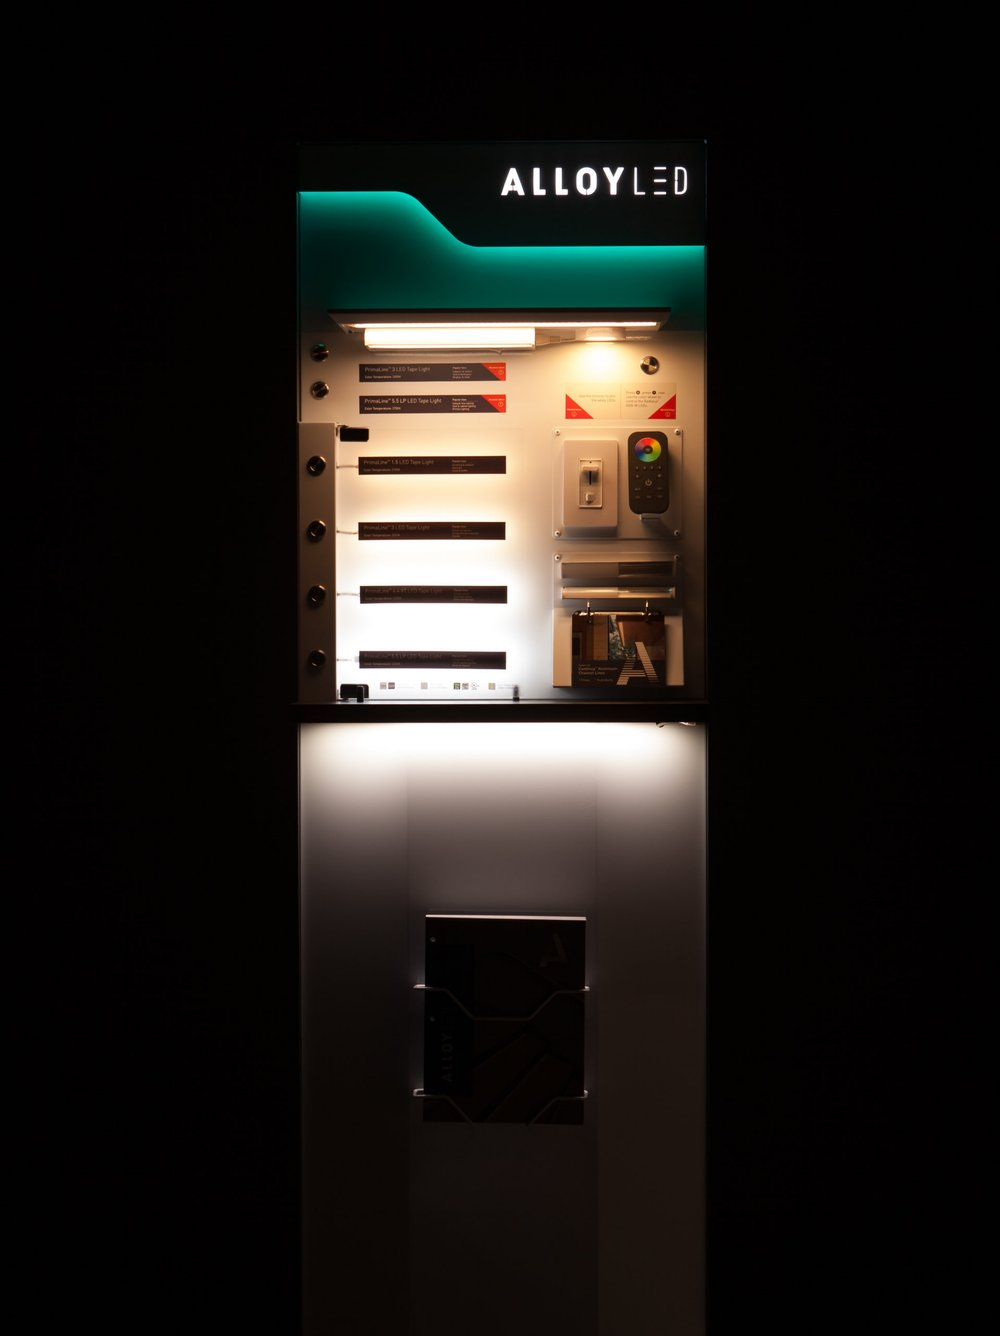 When lit, the display shows the range of color temperatures of the LED strips as well as the quality of the light with minimized hot spots. The lights are also individually controlled.